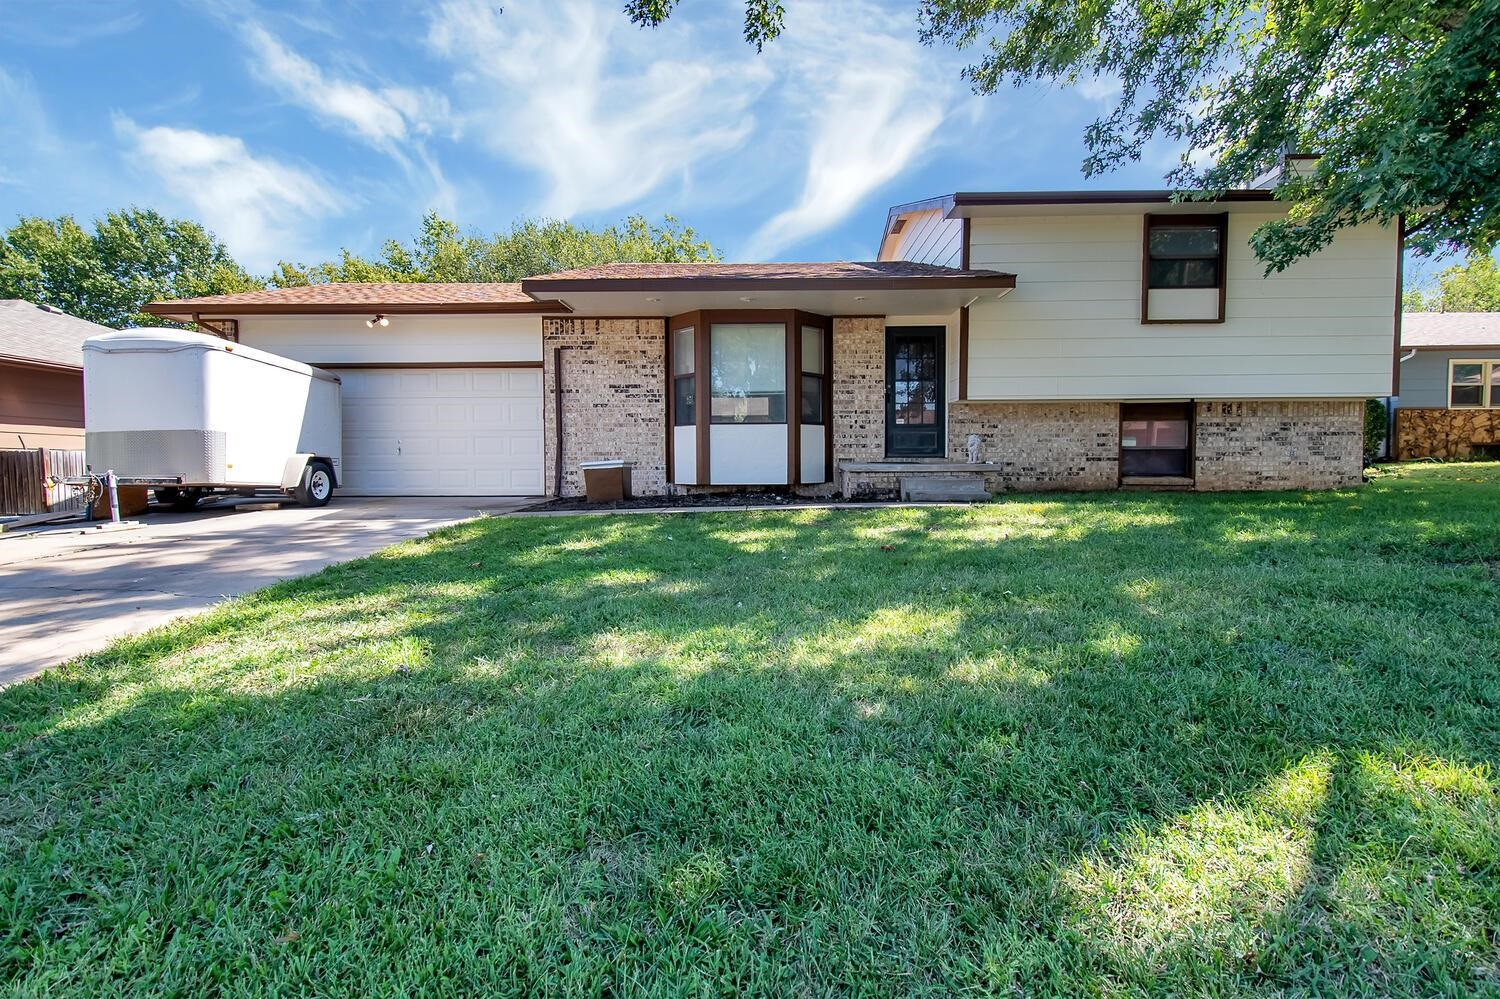 PRICE REDUCED, BUYERS ALLOWANCE, AND MOTIVATED SELLERS!!!  Quad level home features 2 bedrooms and 3